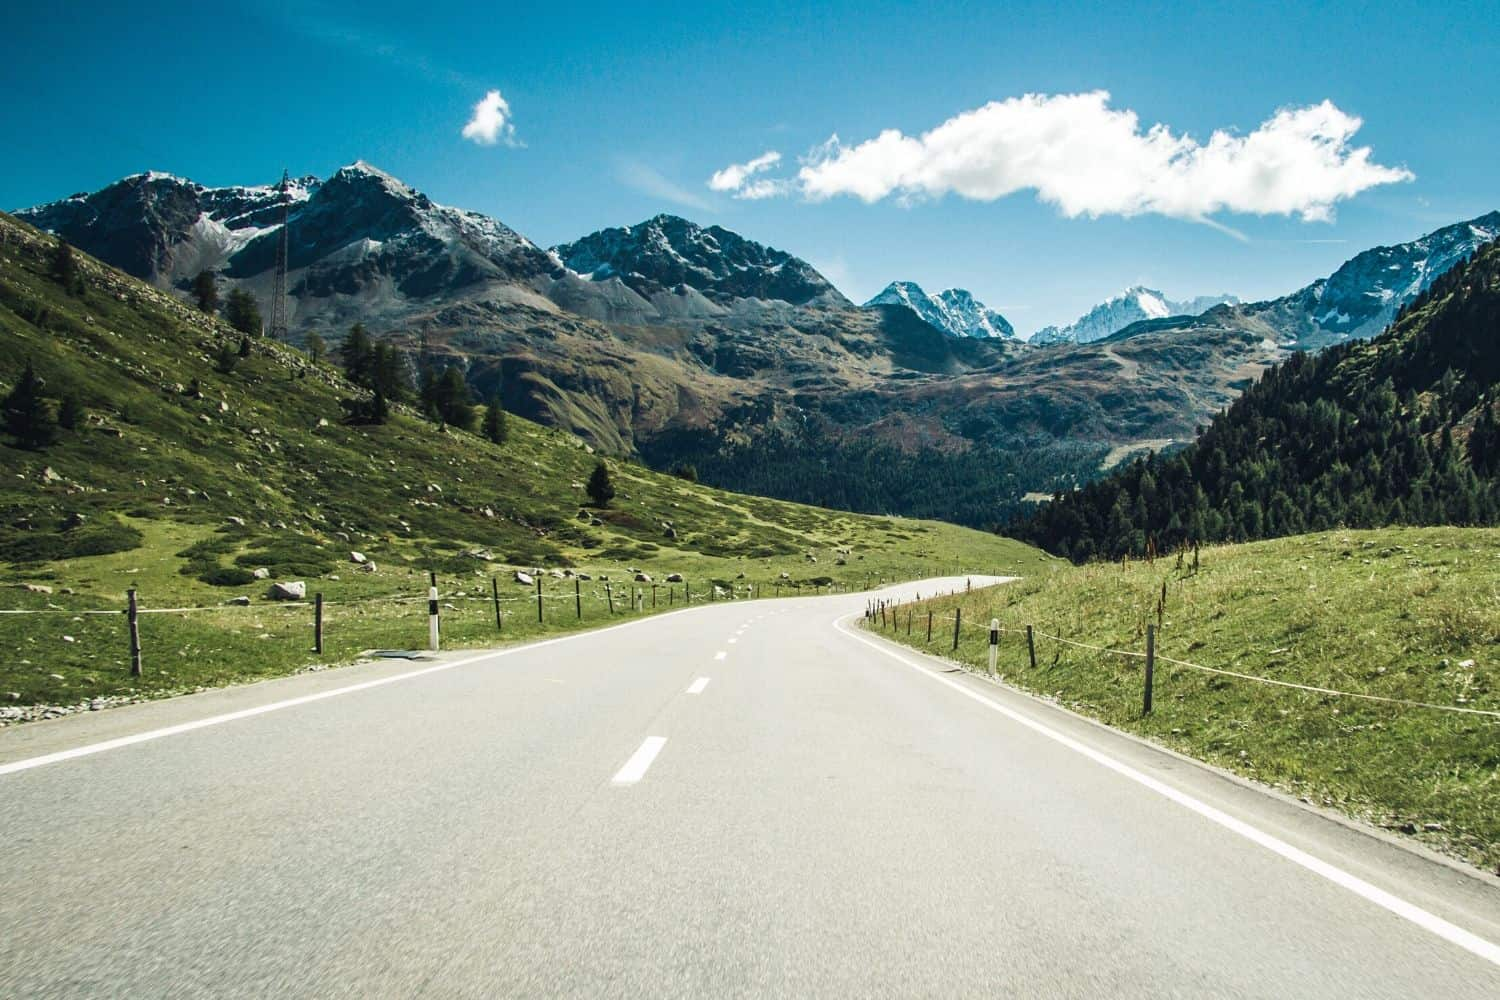 Renting a car in Switzerland